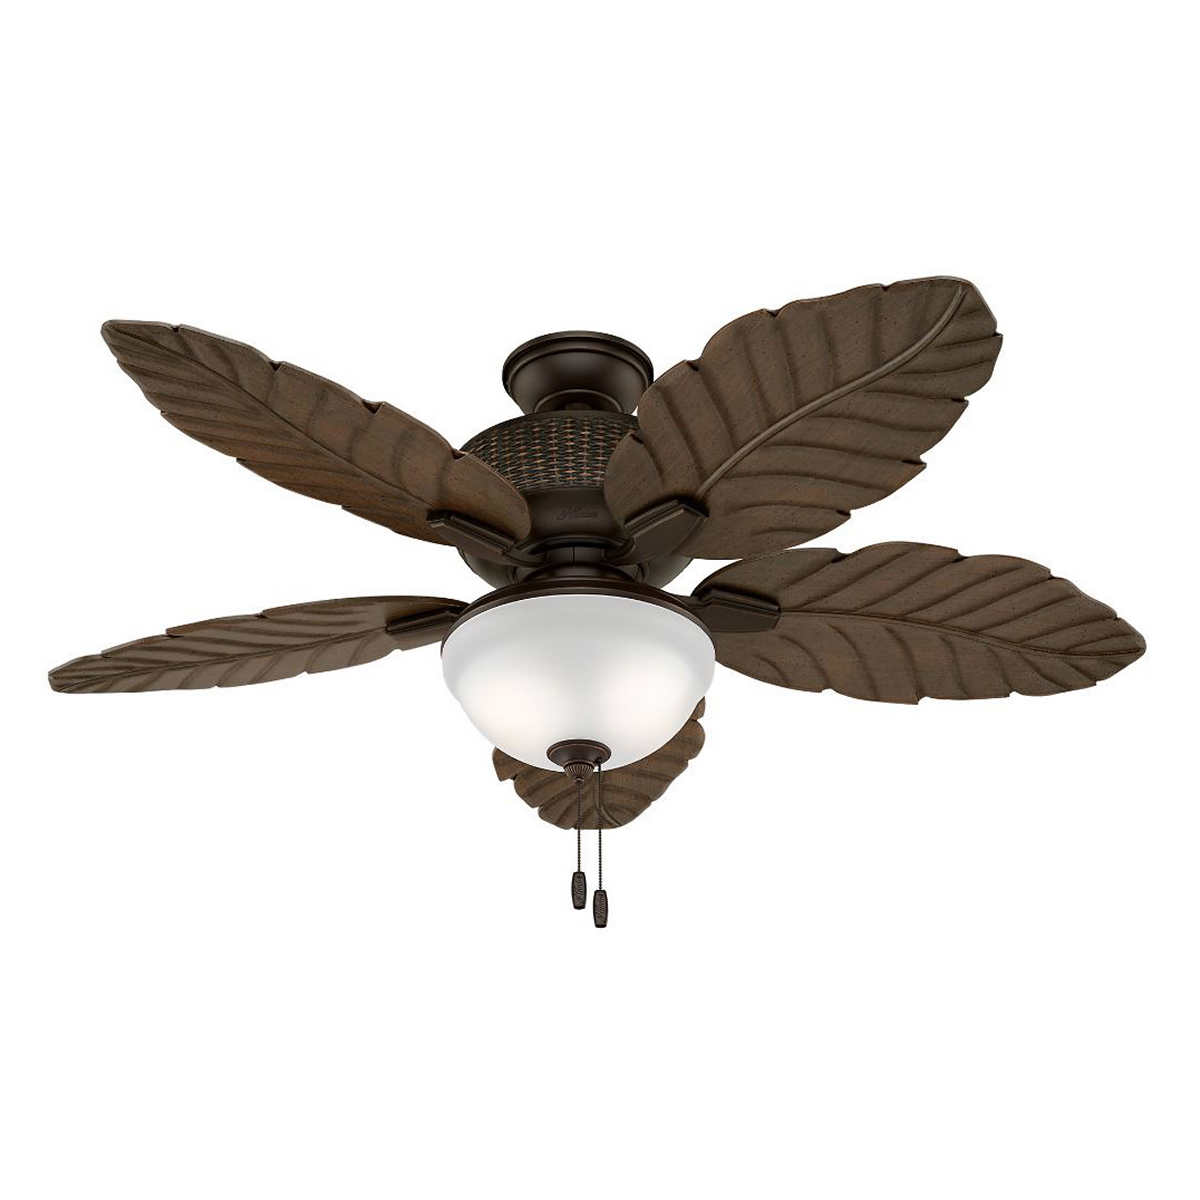 Hunter newcastle 52 3 light ceiling fan with remote member only item mozeypictures Gallery